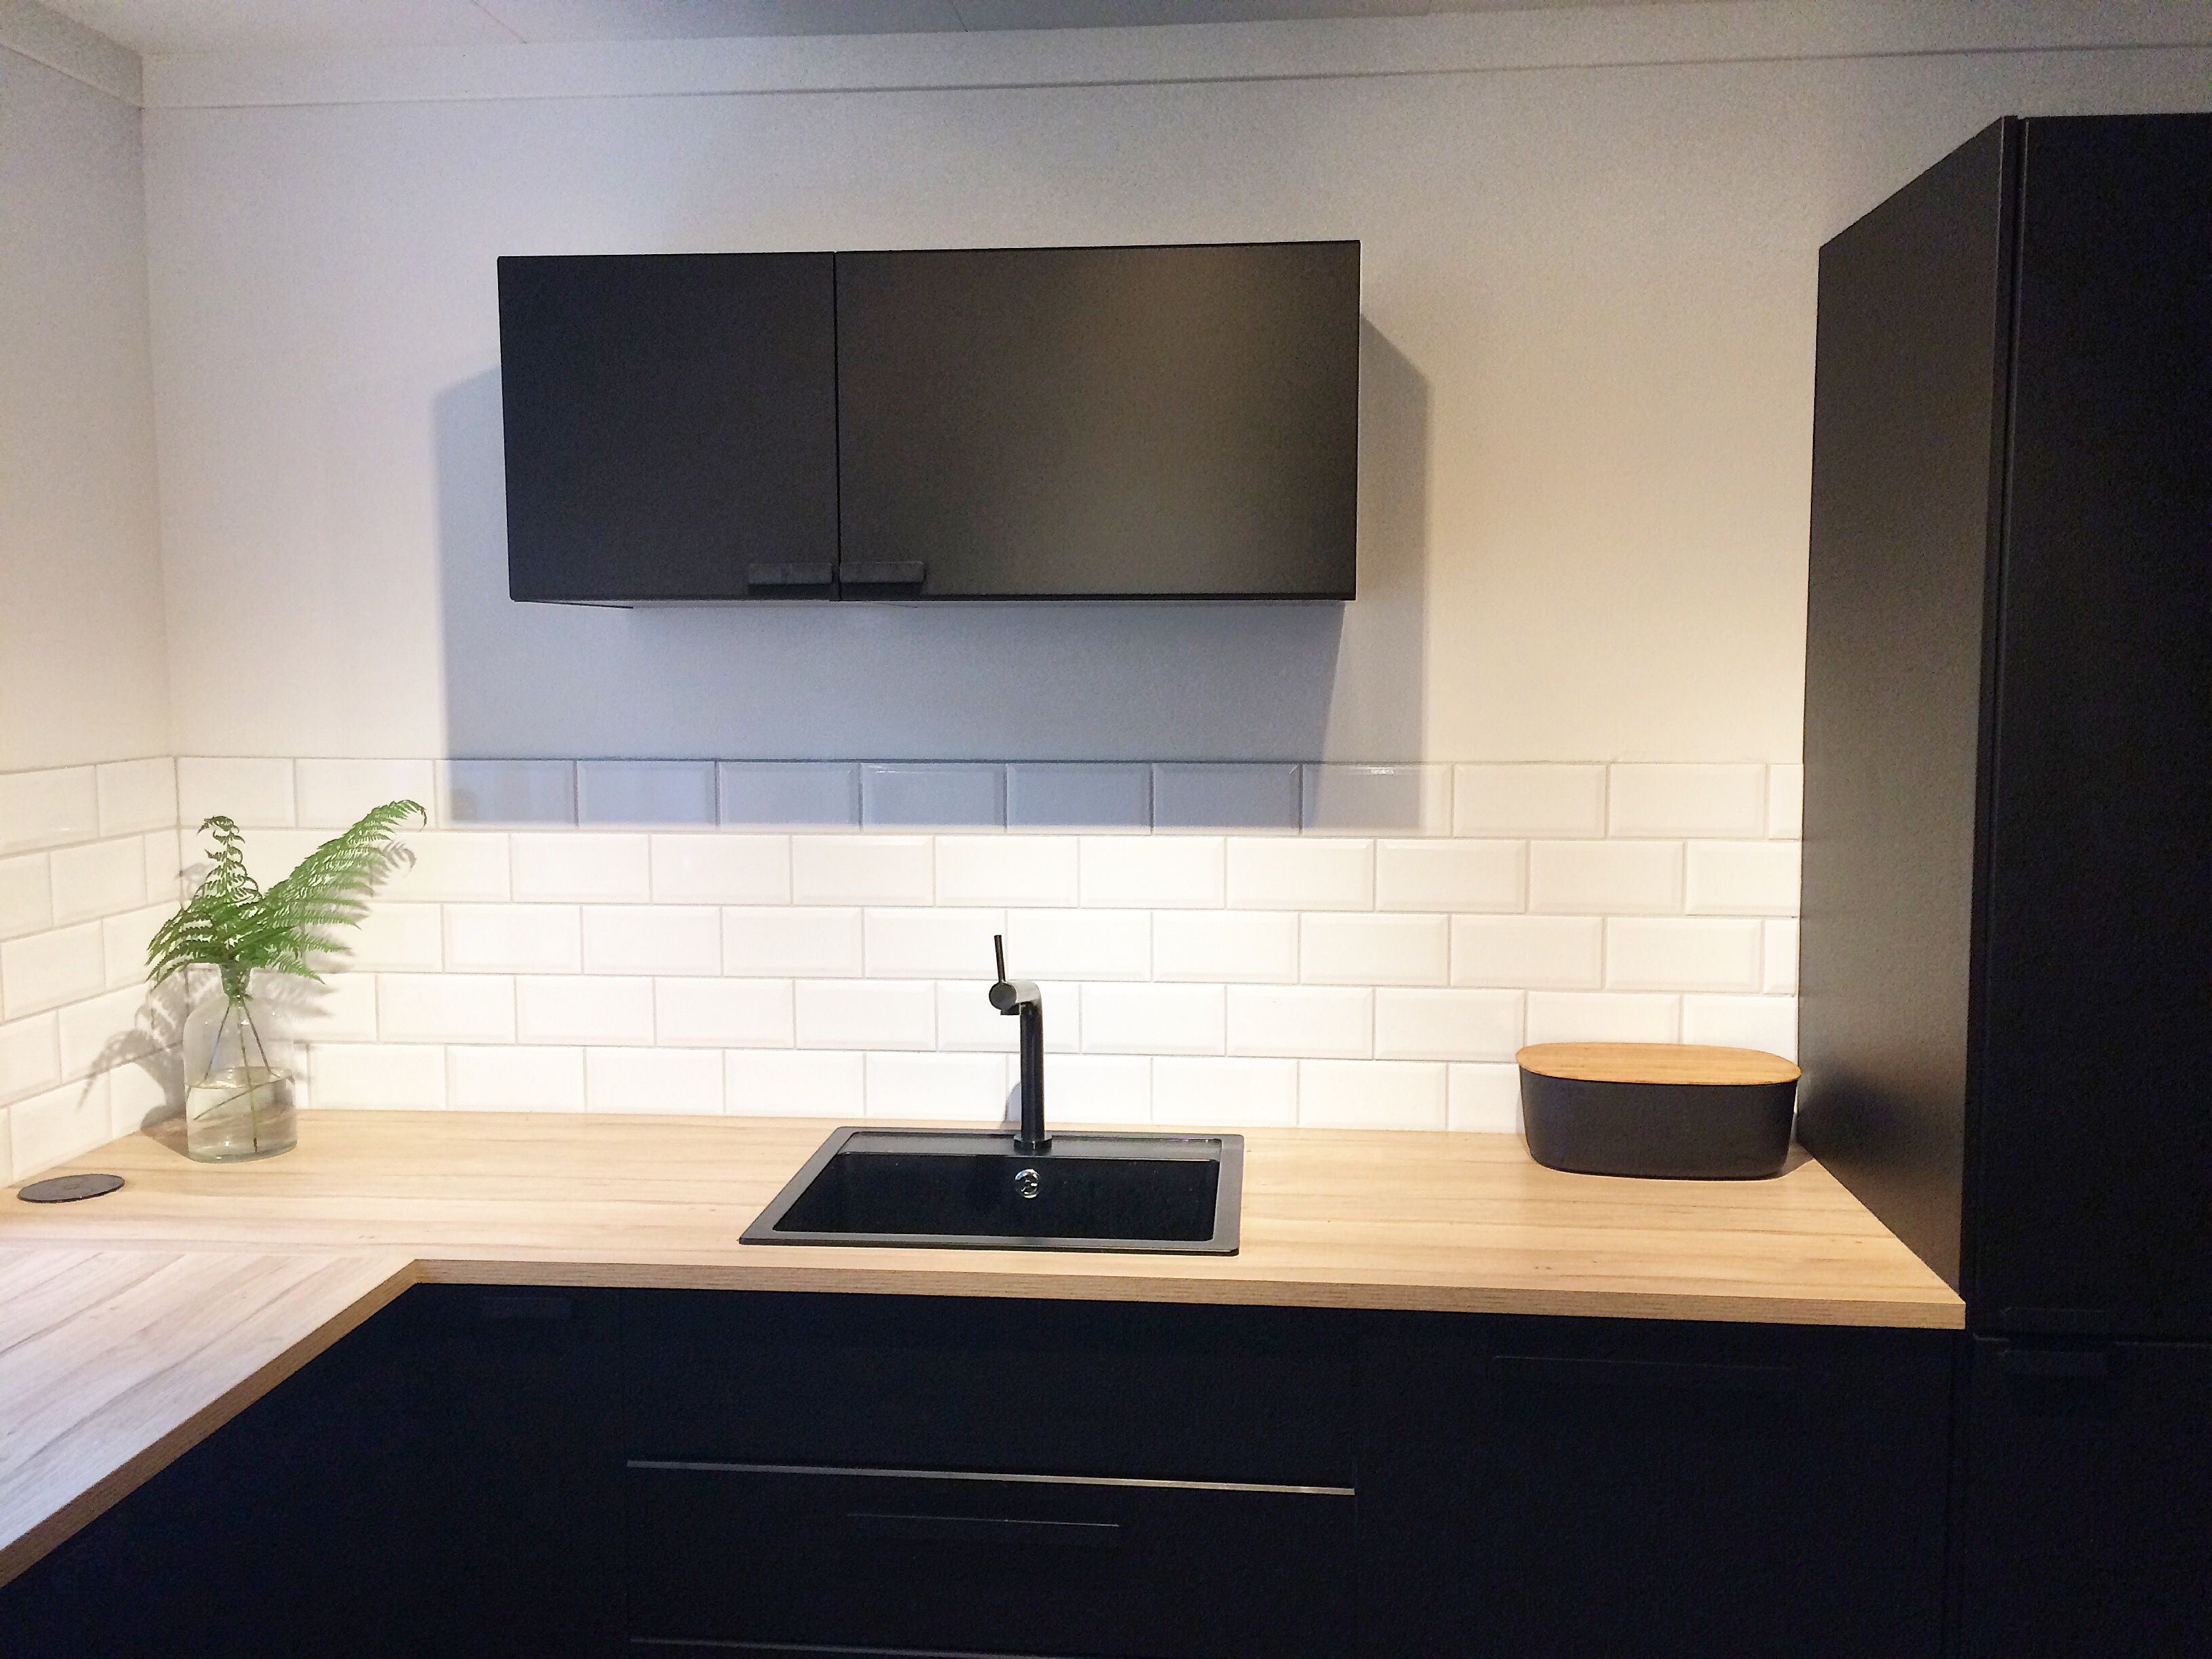 Ikea kungsbacka cuisine pinterest kitchens black for Cuisine kungsbacka